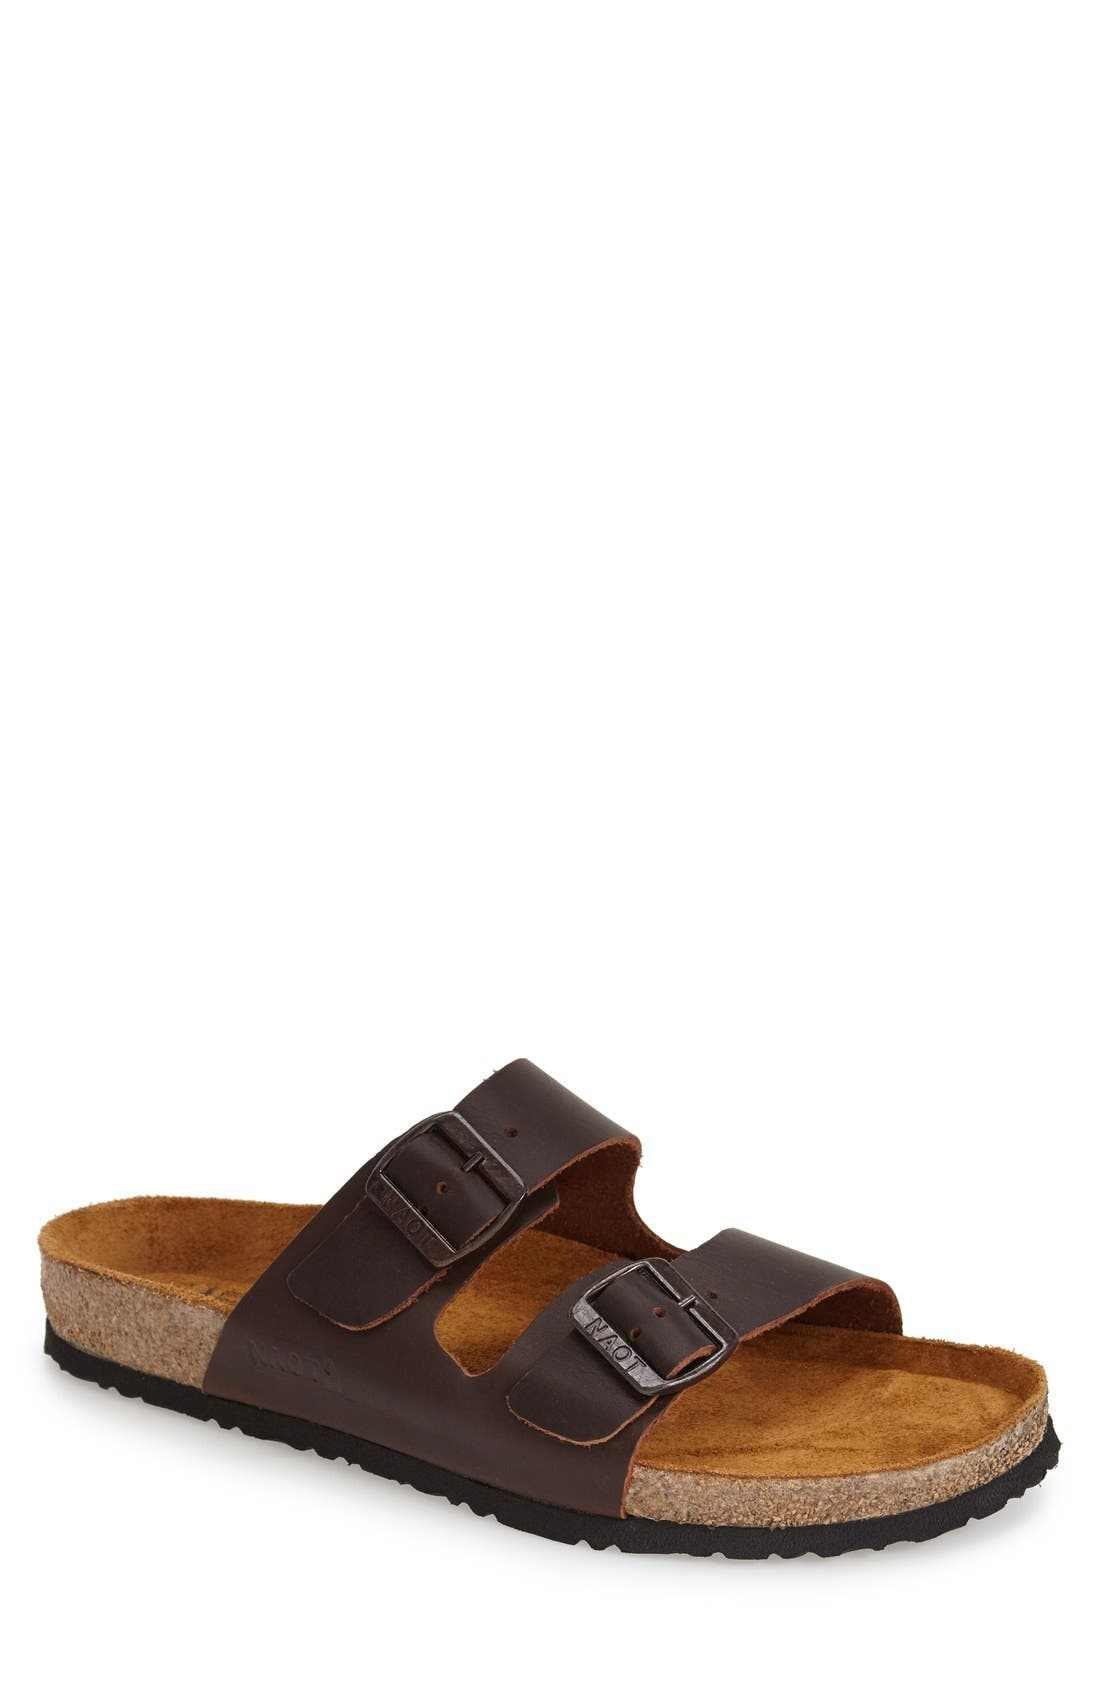 Santa Barbara Slide Sandal,                         Main,                         color, BUFFALO LEATHER